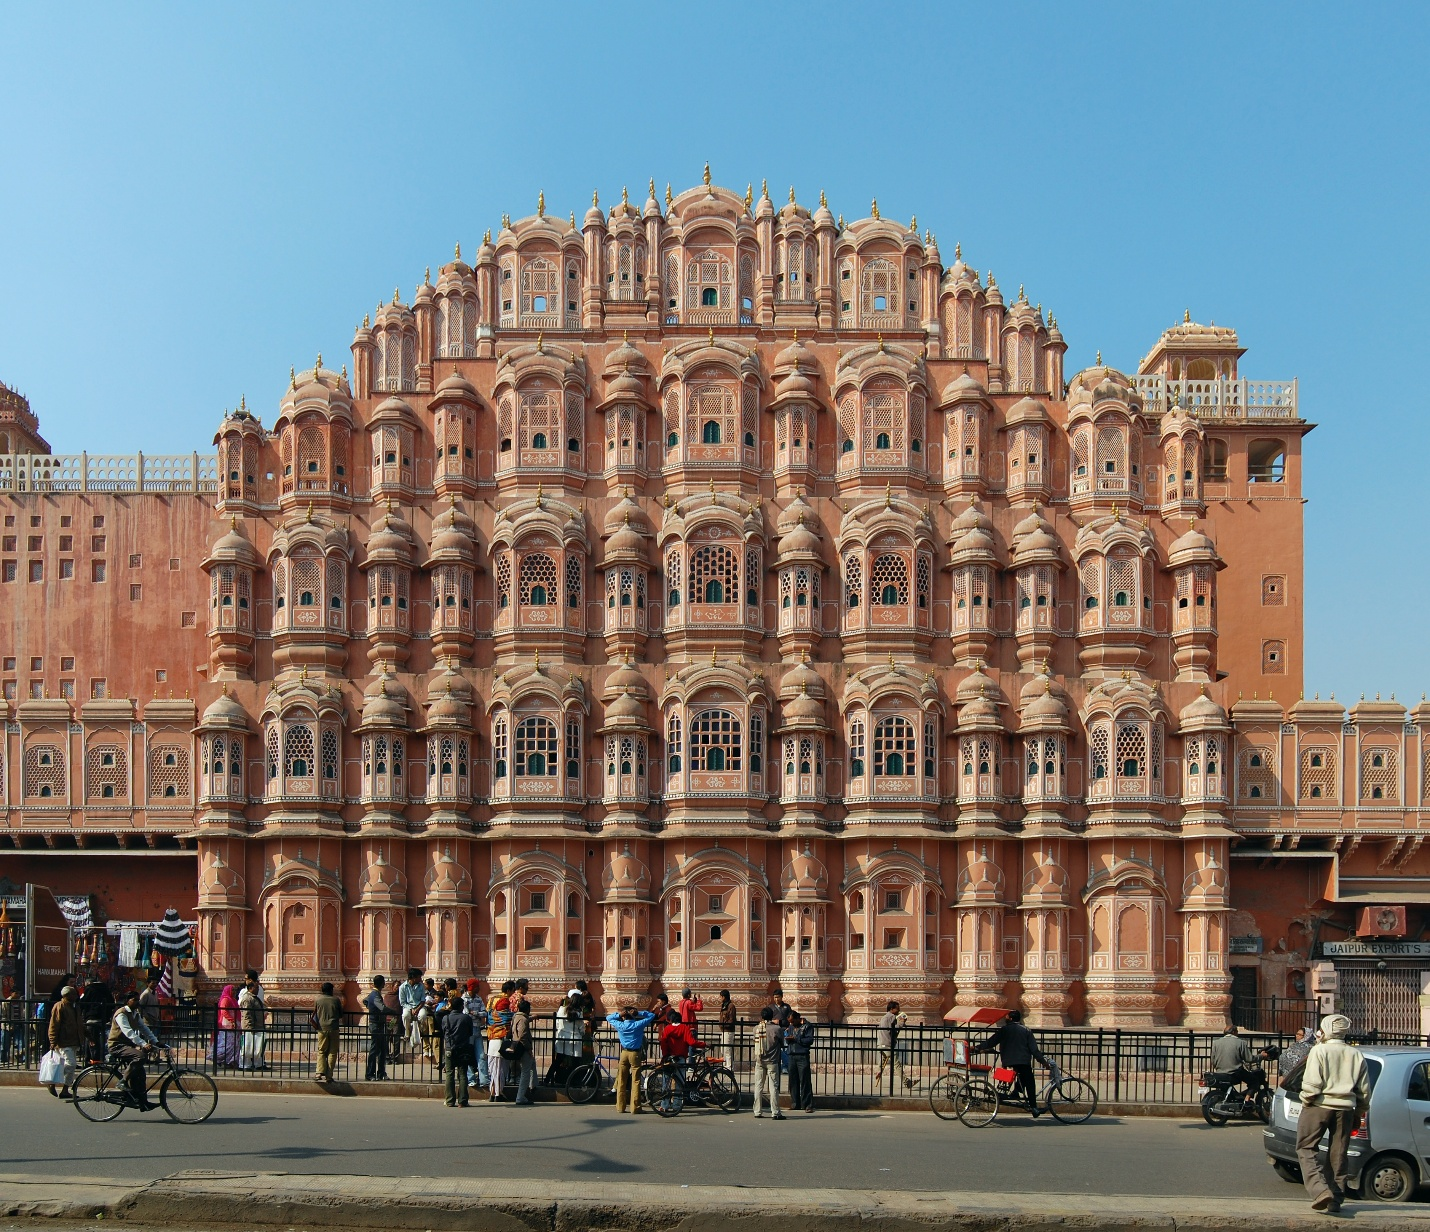 https://upload.wikimedia.org/wikipedia/commons/3/37/Hawa_Mahal_2011.jpg